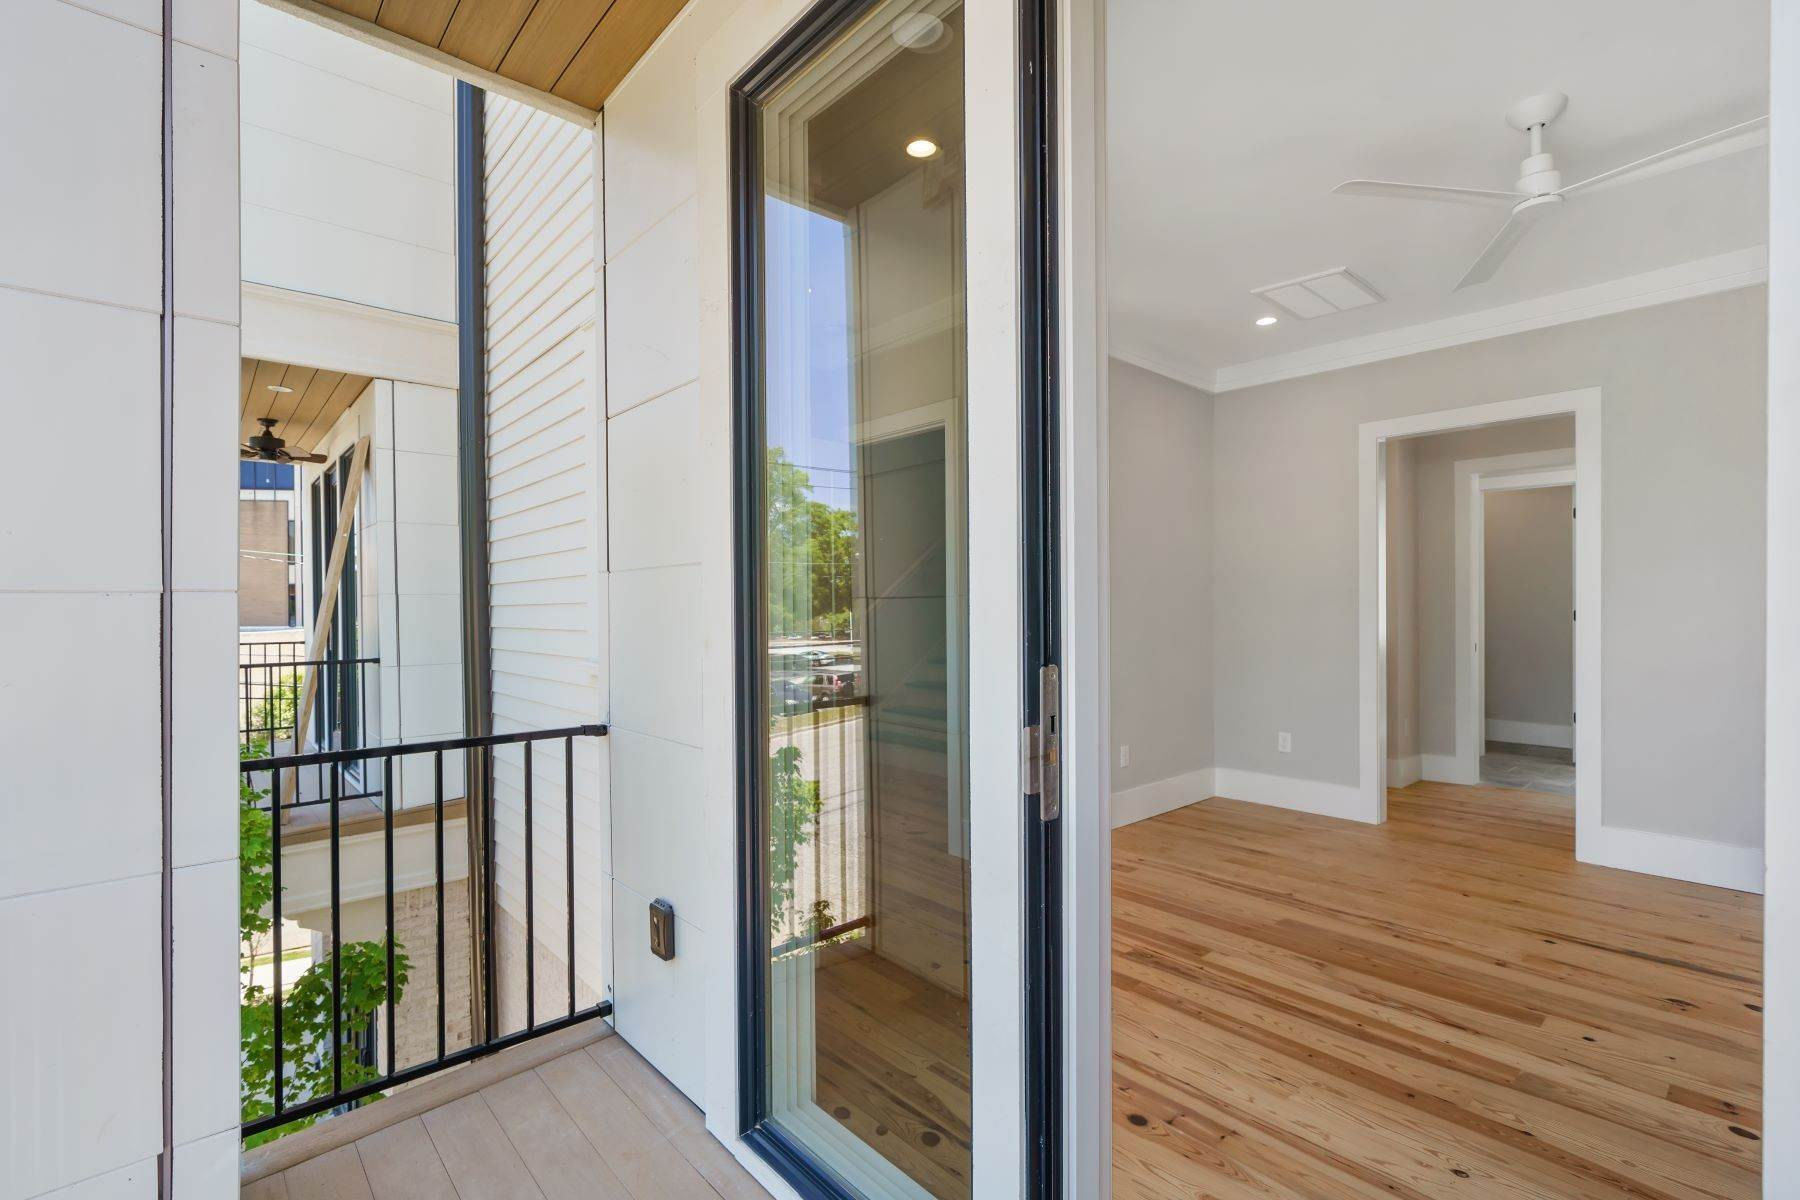 20. townhouses for Sale at 48 Claussen Avenue, Greenville, SC 29601 Greenville, SC 29601